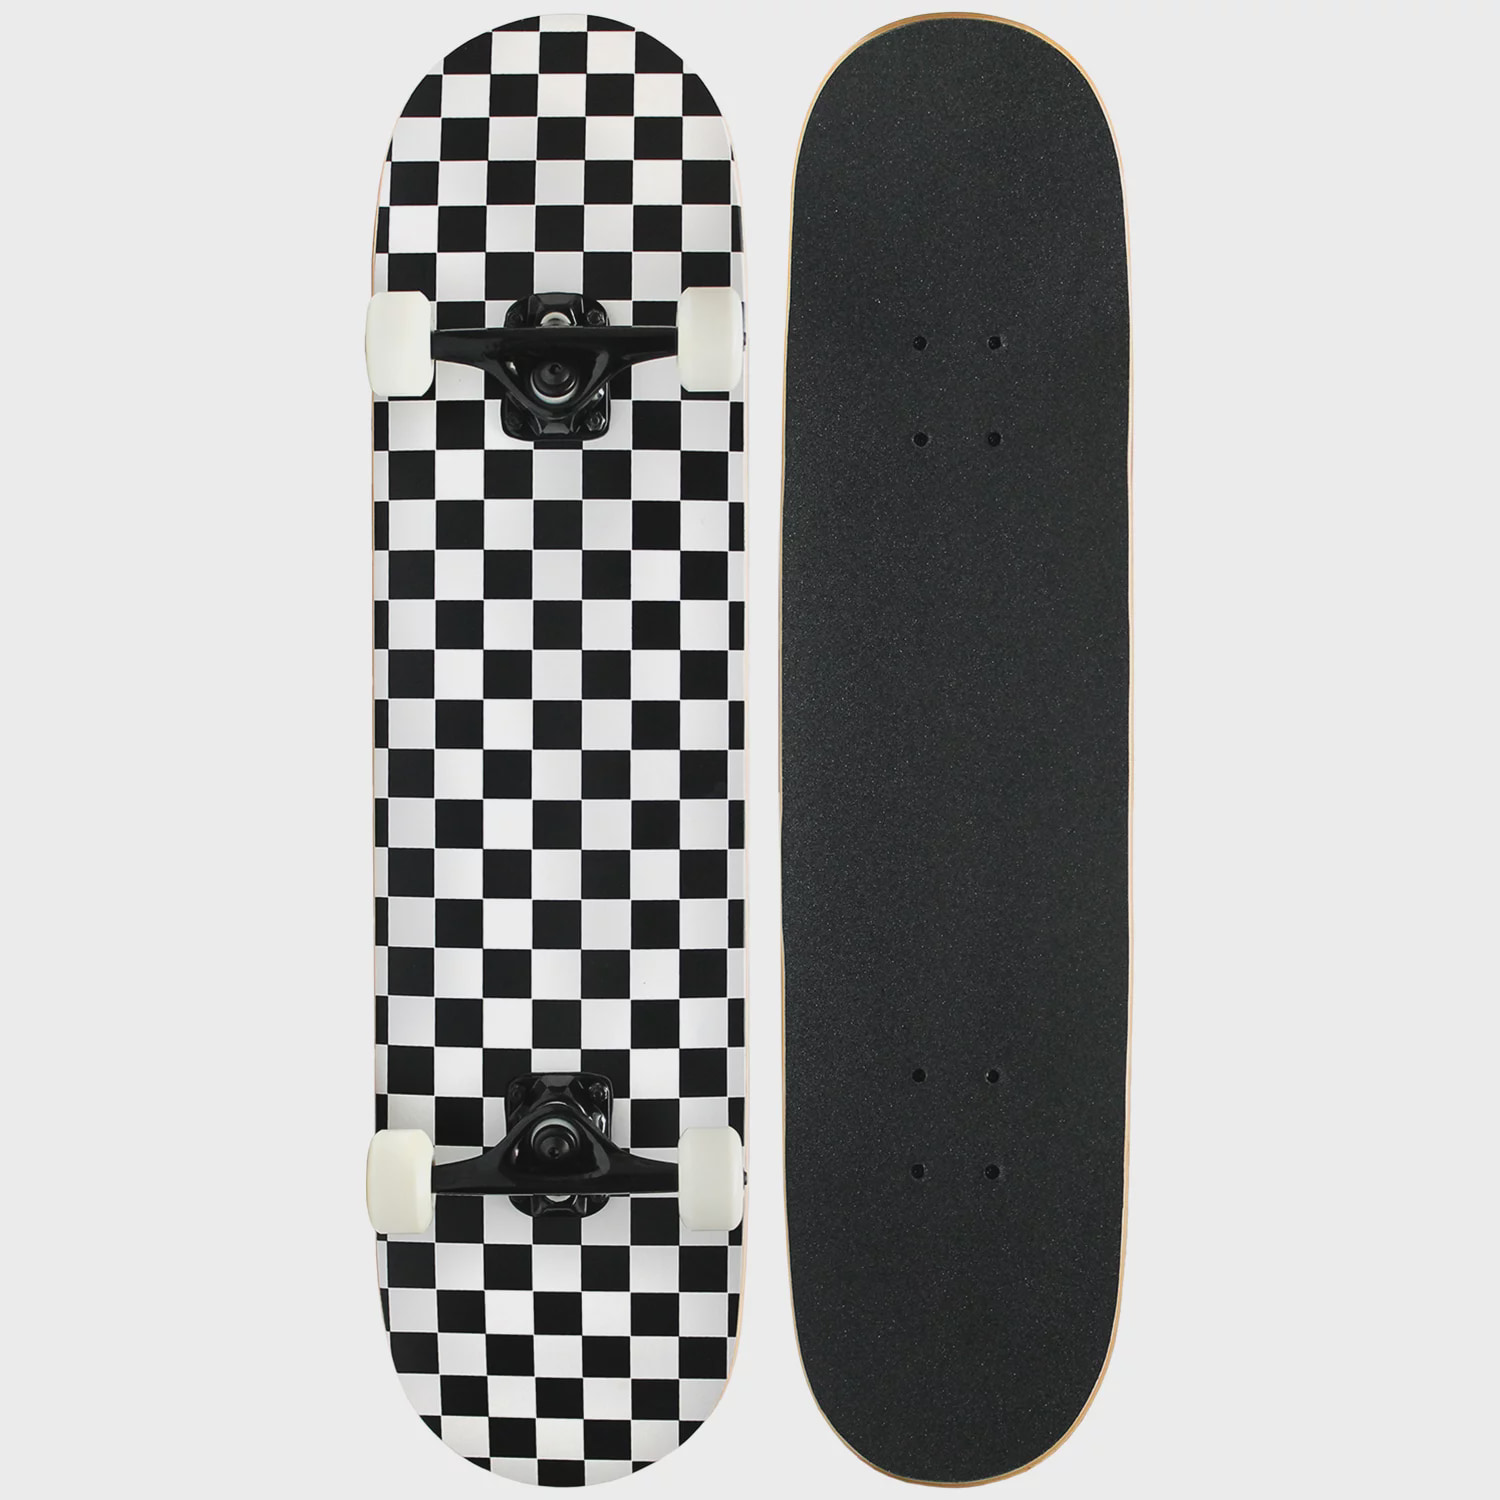 PRO Skateboard Complete Pre-Built CHECKER PATTERN 7.75 in Black White by